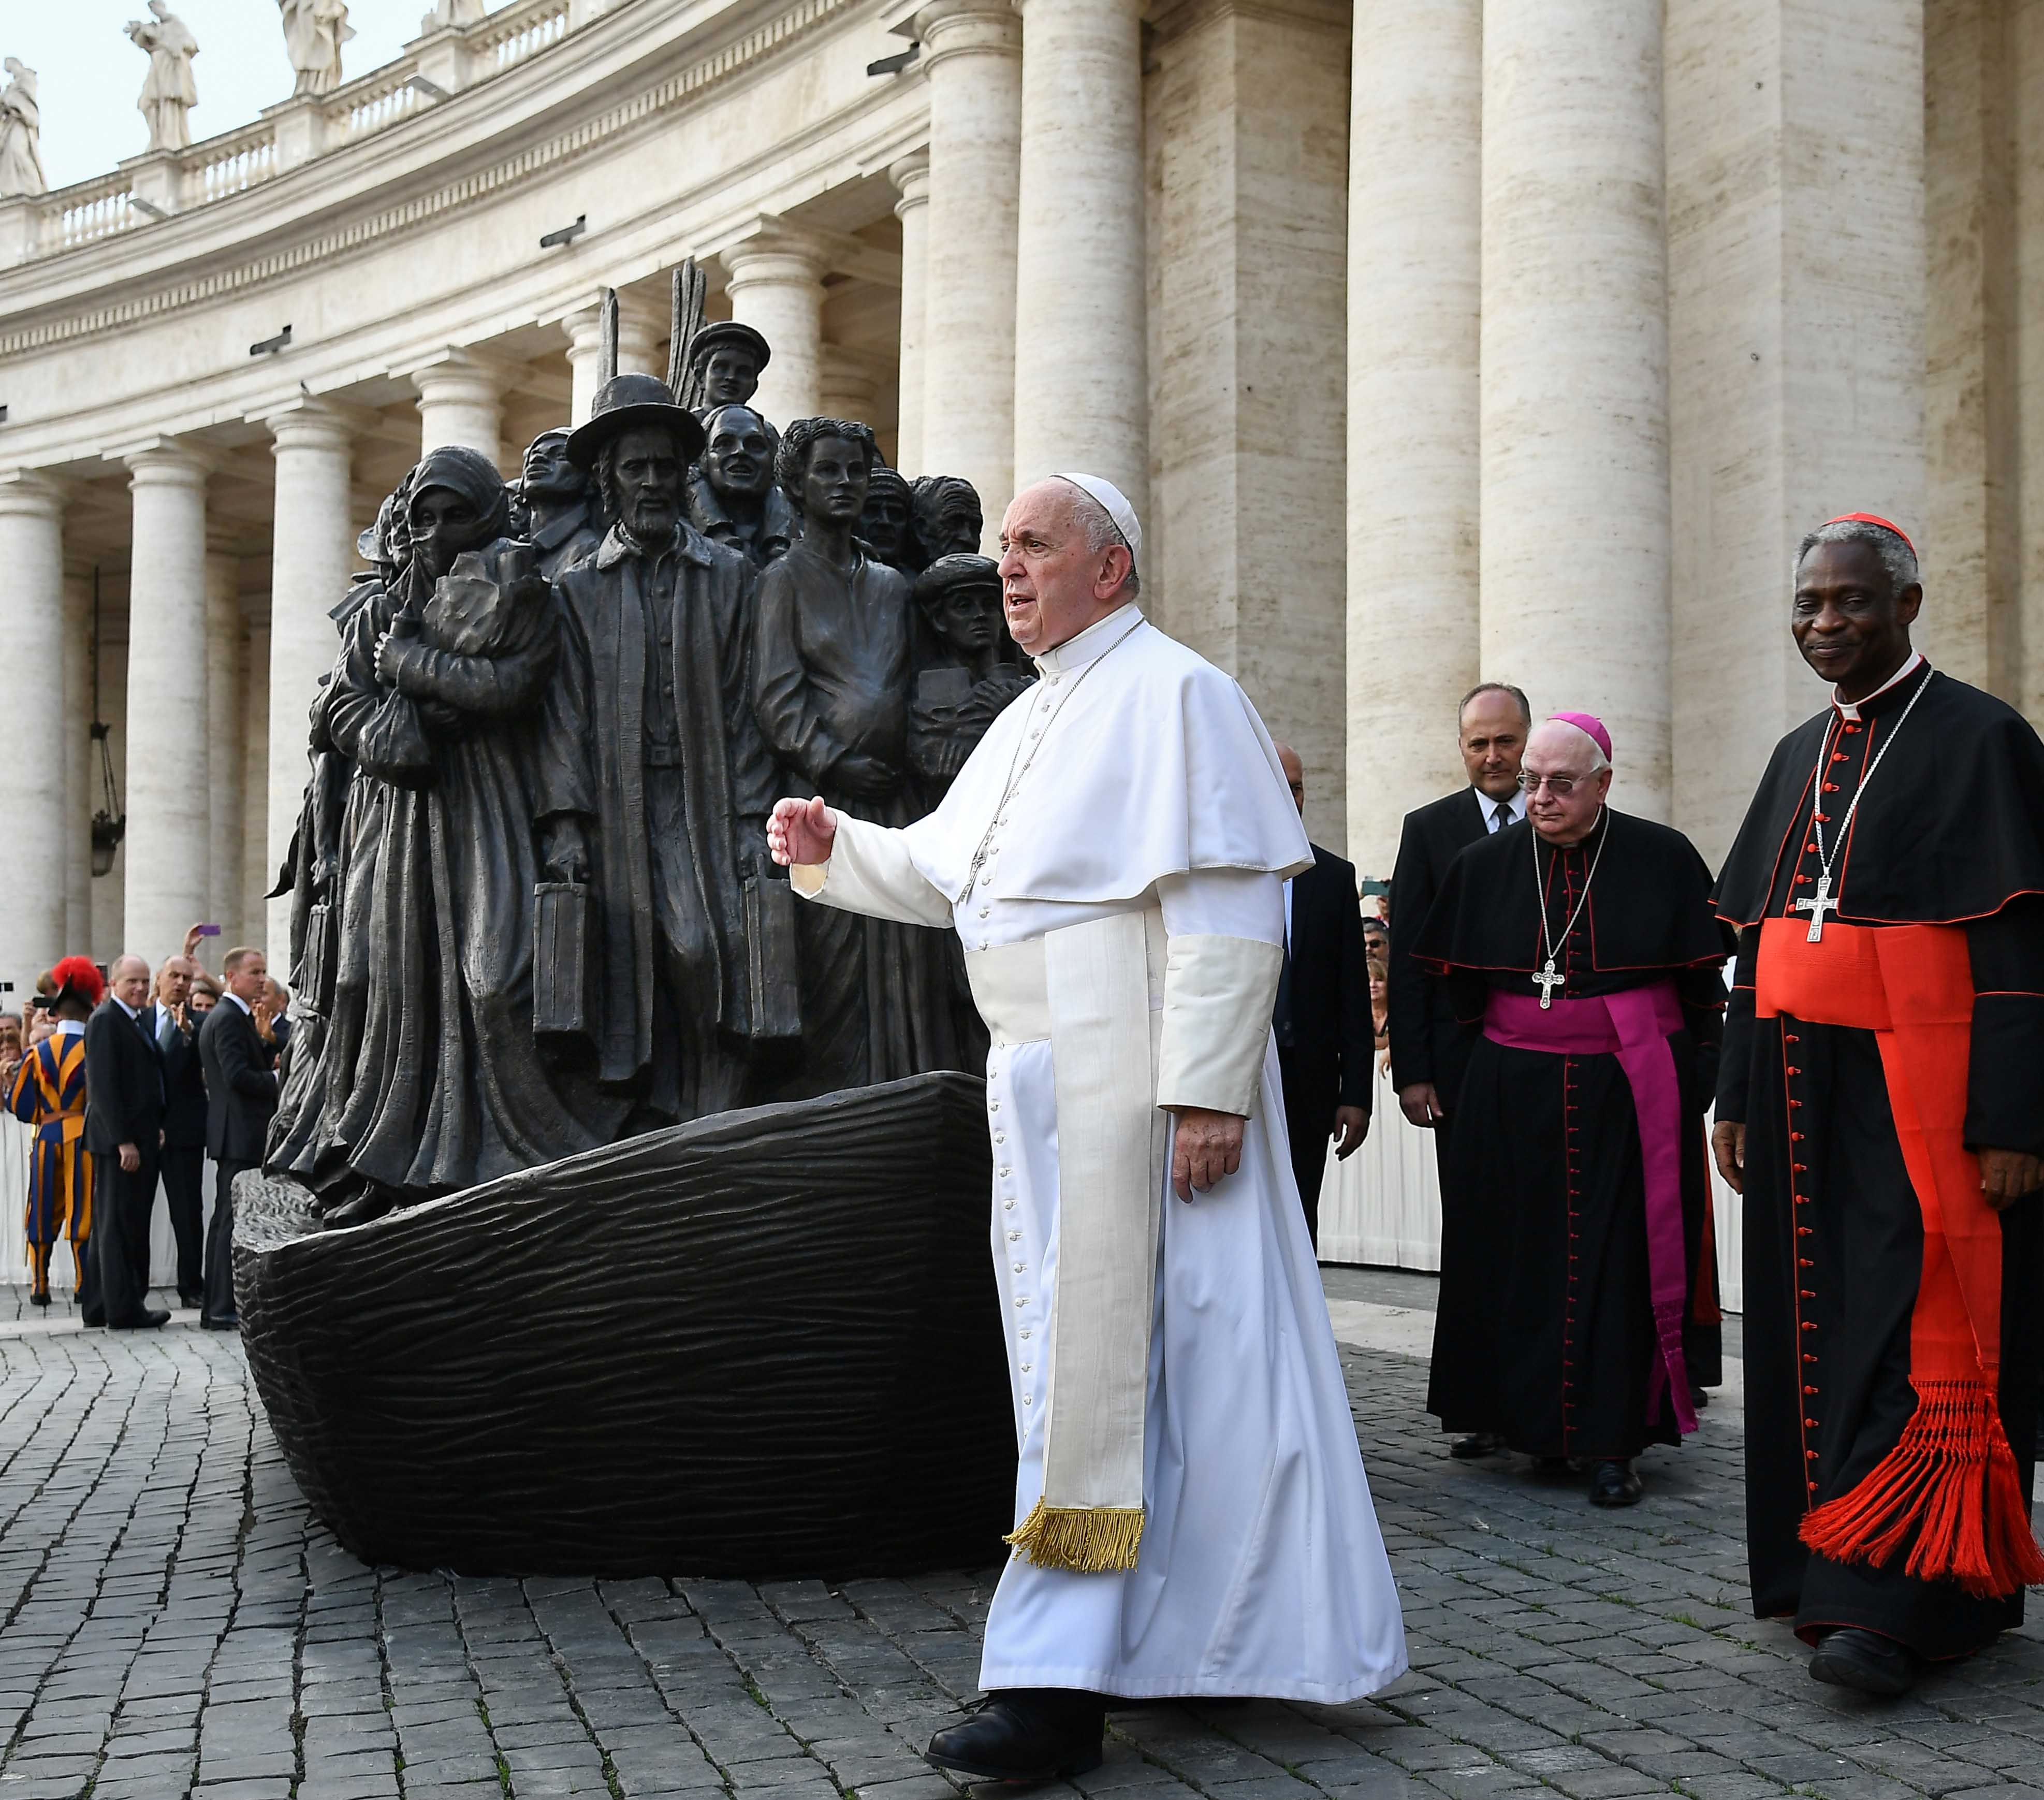 20190930T0624-548-CNS-POPE-MASS-MIGRANTS-REFUGEES